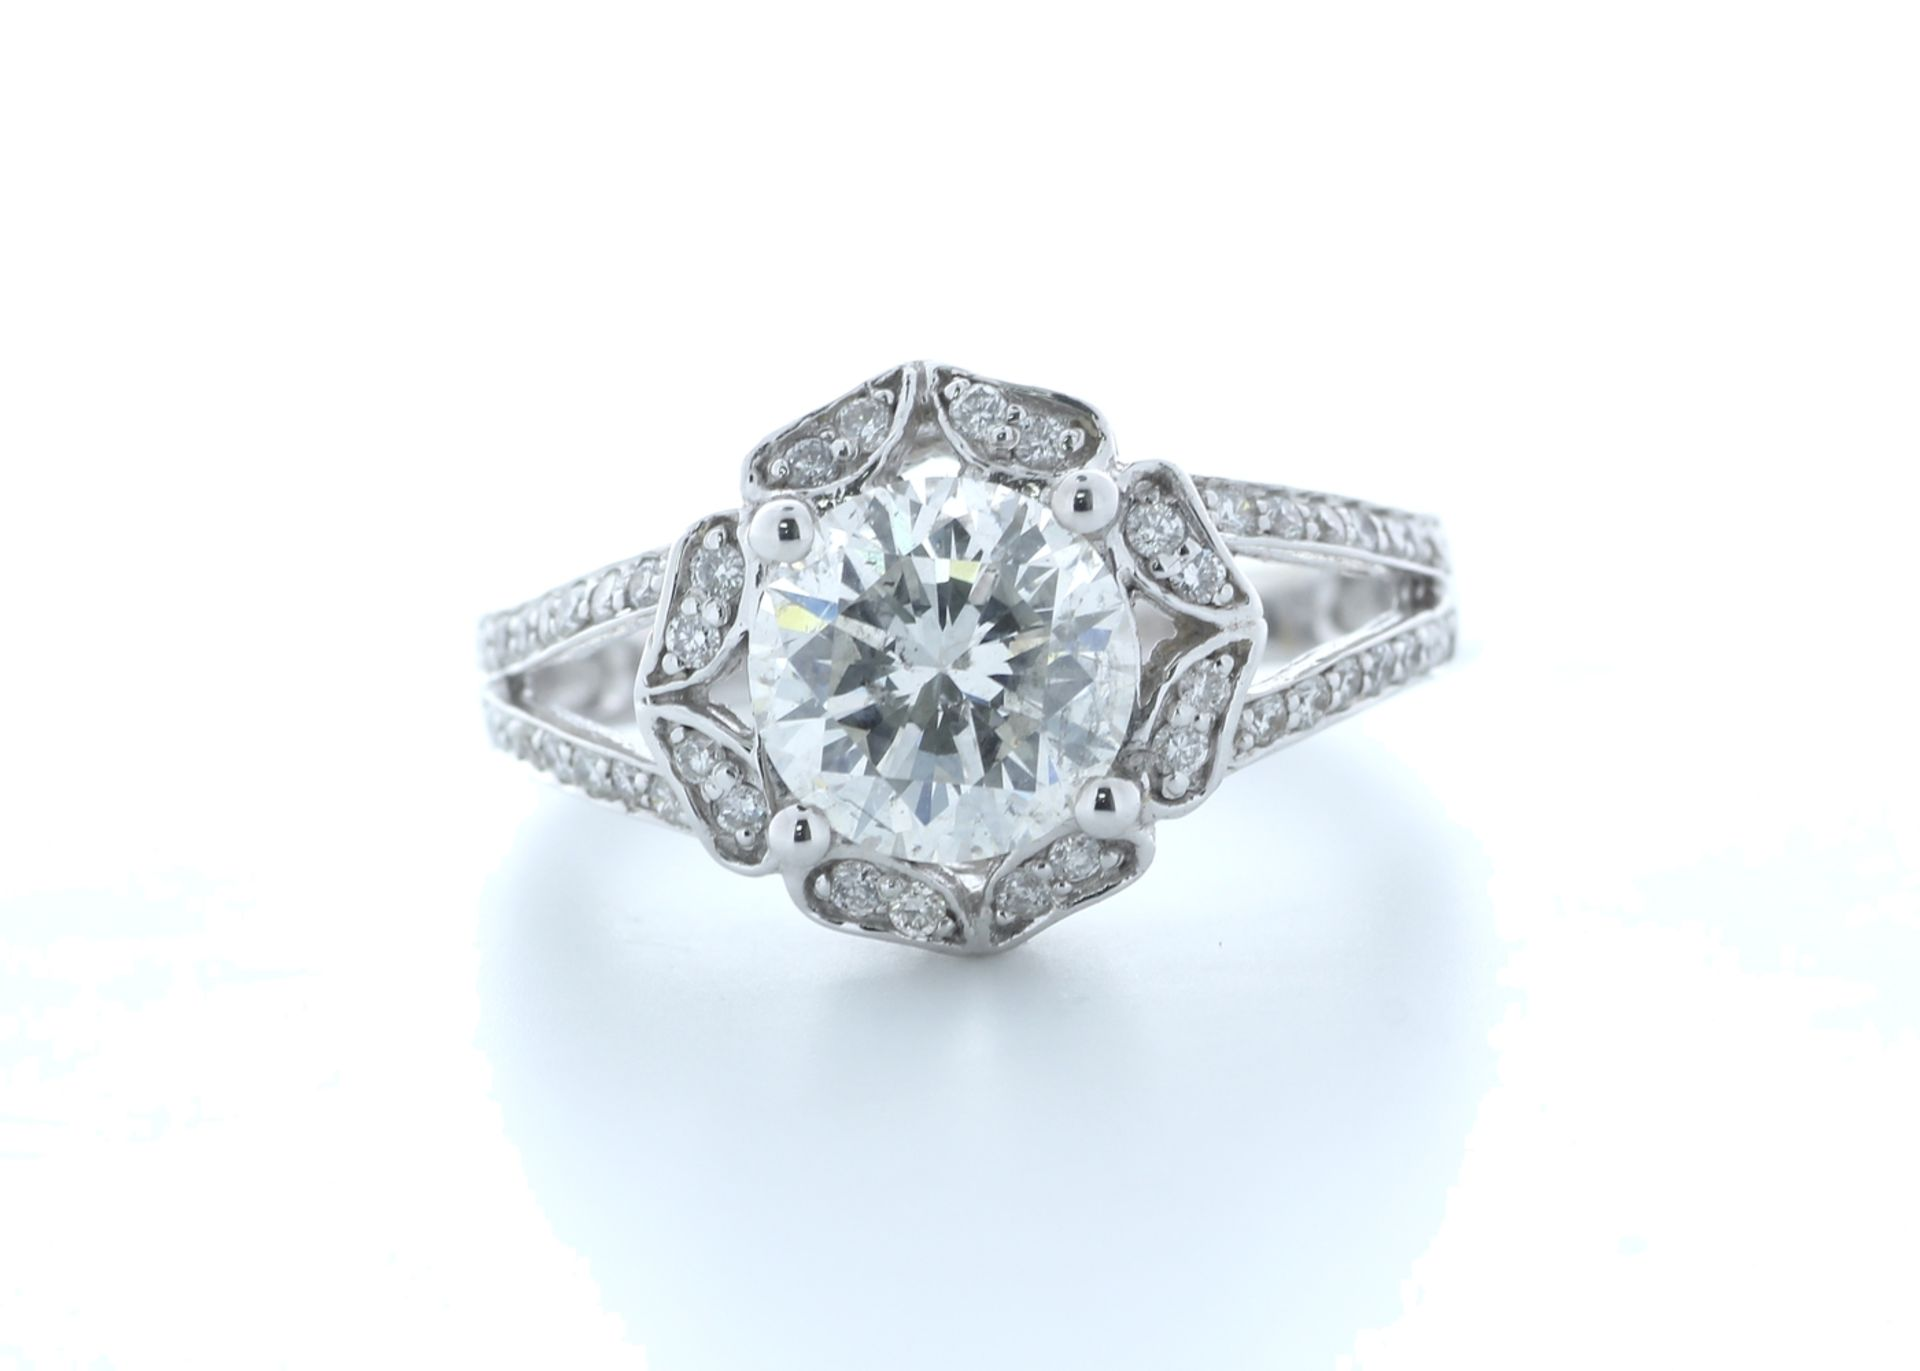 18ct White Gold Single Stone With Halo Setting Ring 2.06 (1.66) Carats - Valued by IDI £36,000.